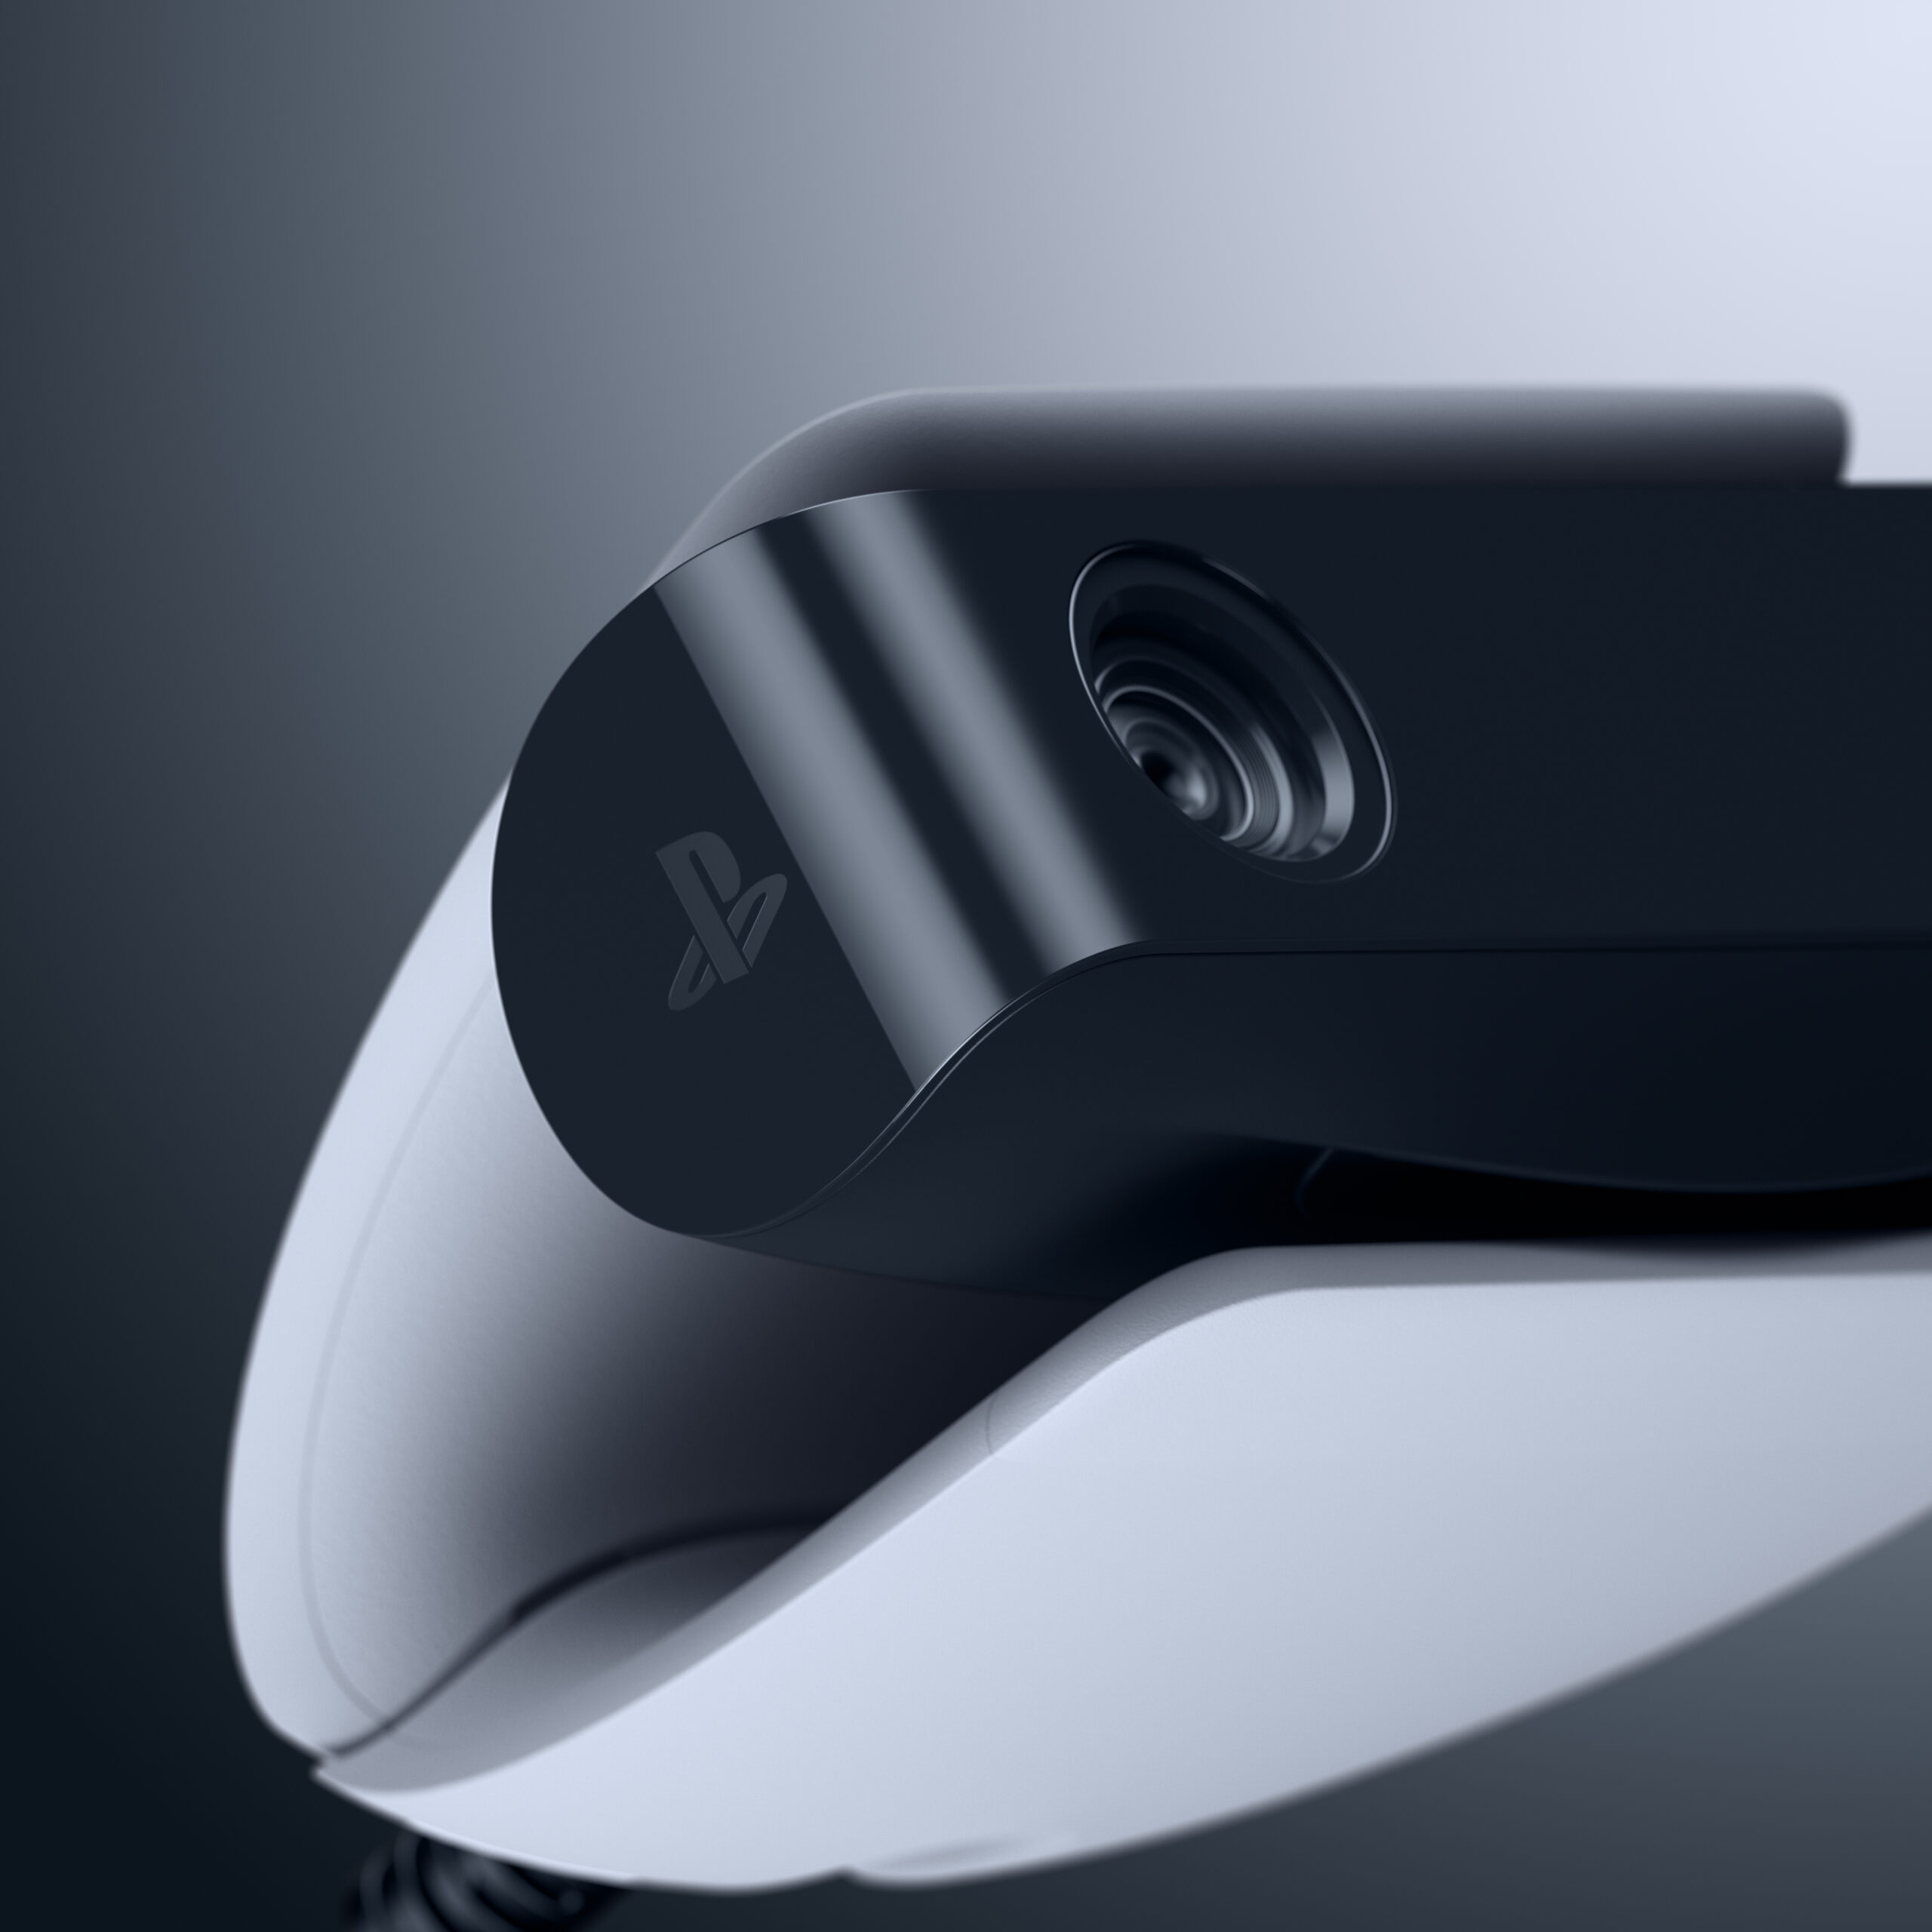 PS5 Hardware and Accessories 26